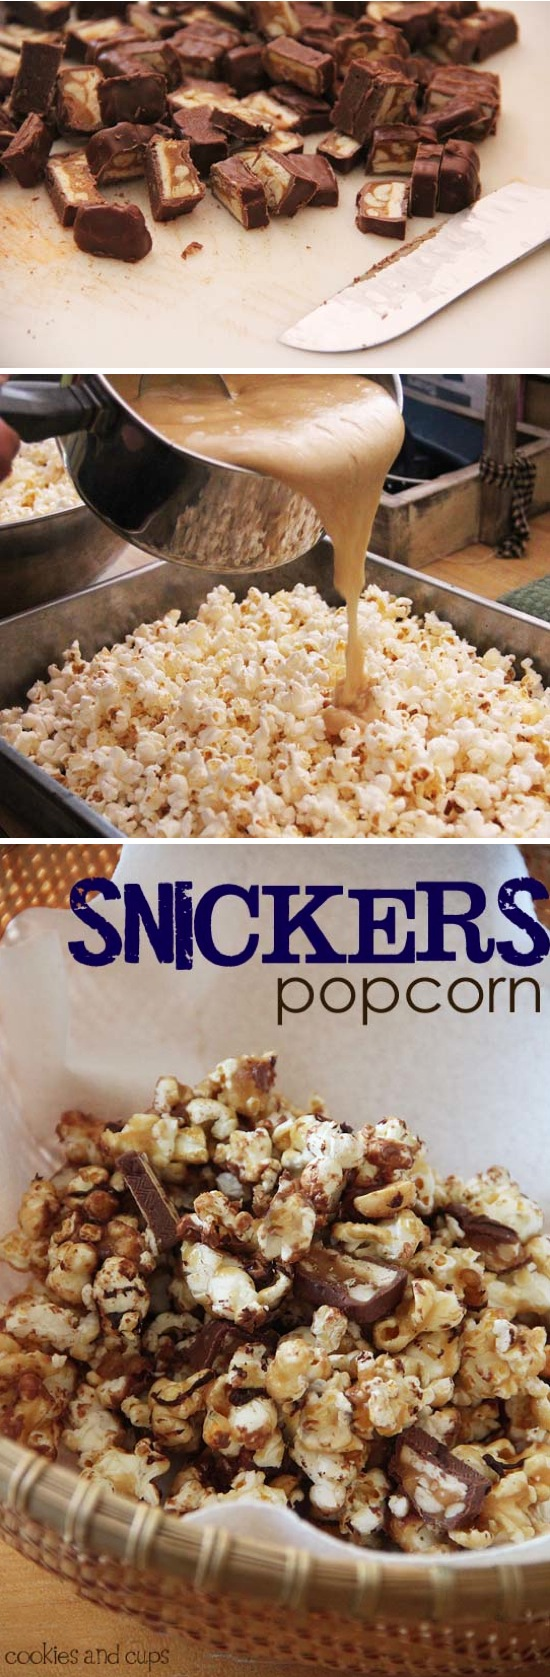 Snickers-Popcorn